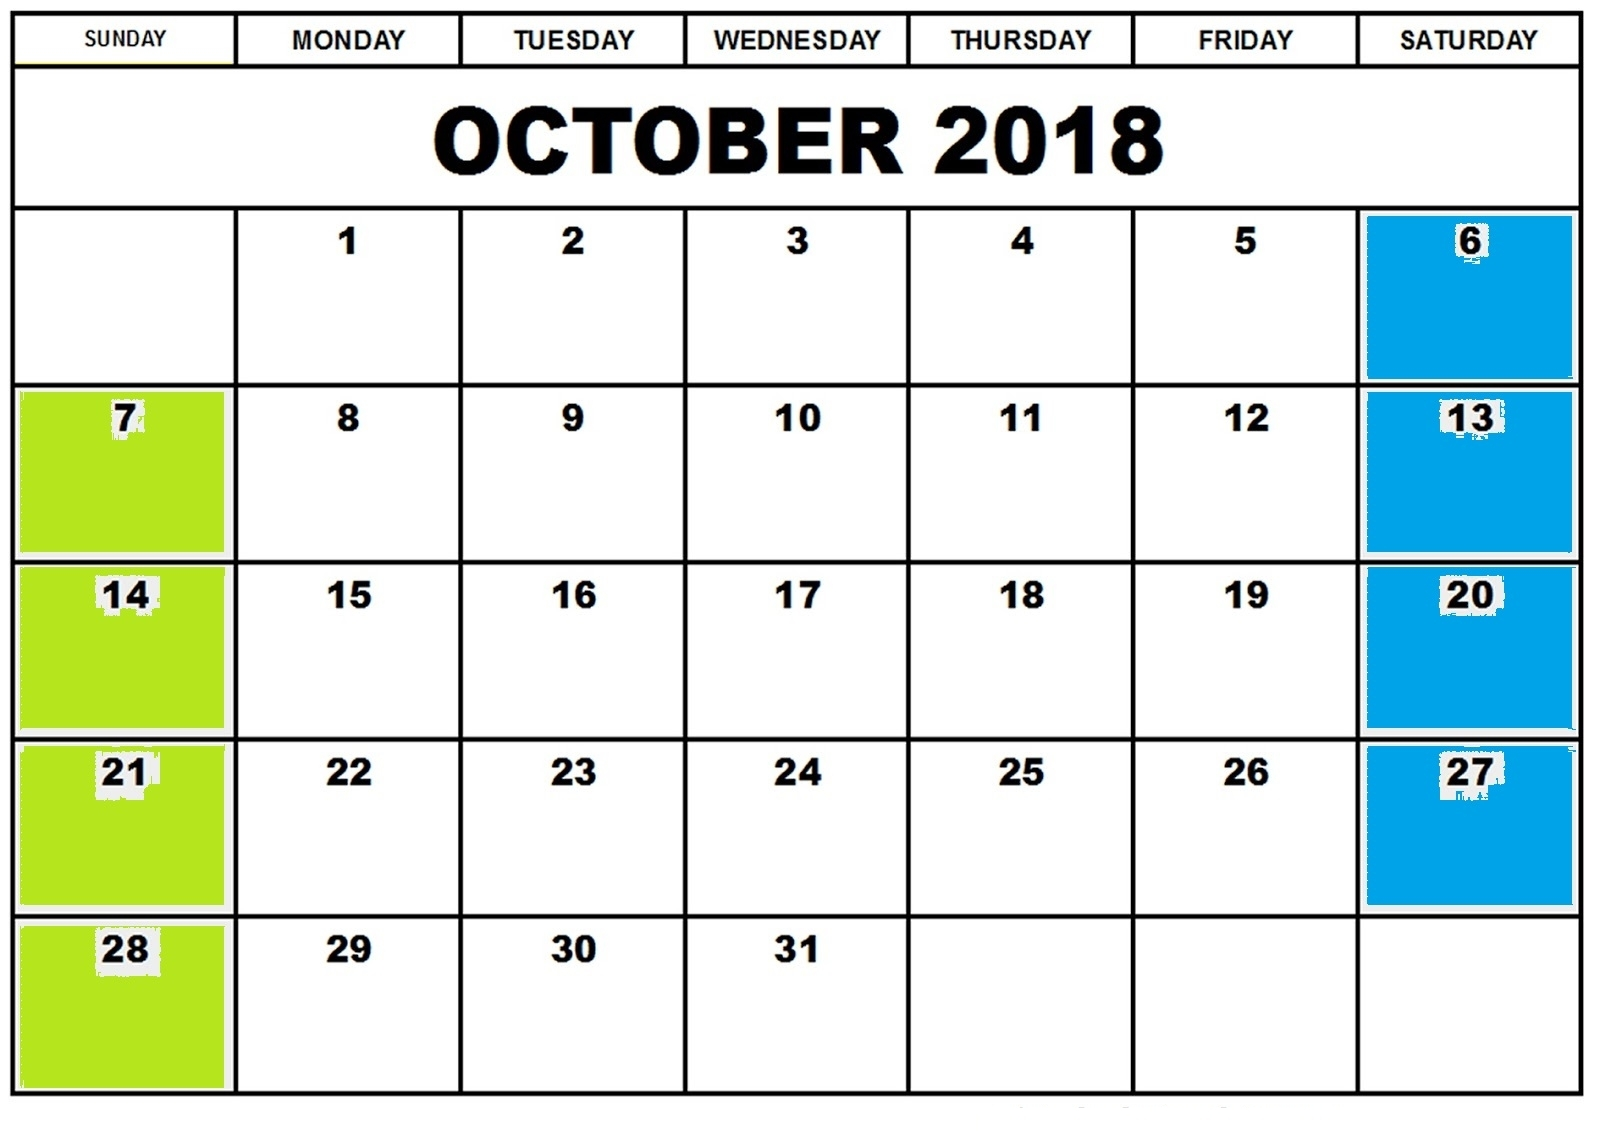 blank october 2018 calendar printable template editable printable October 2018 Calendar Printable Template erdferdf